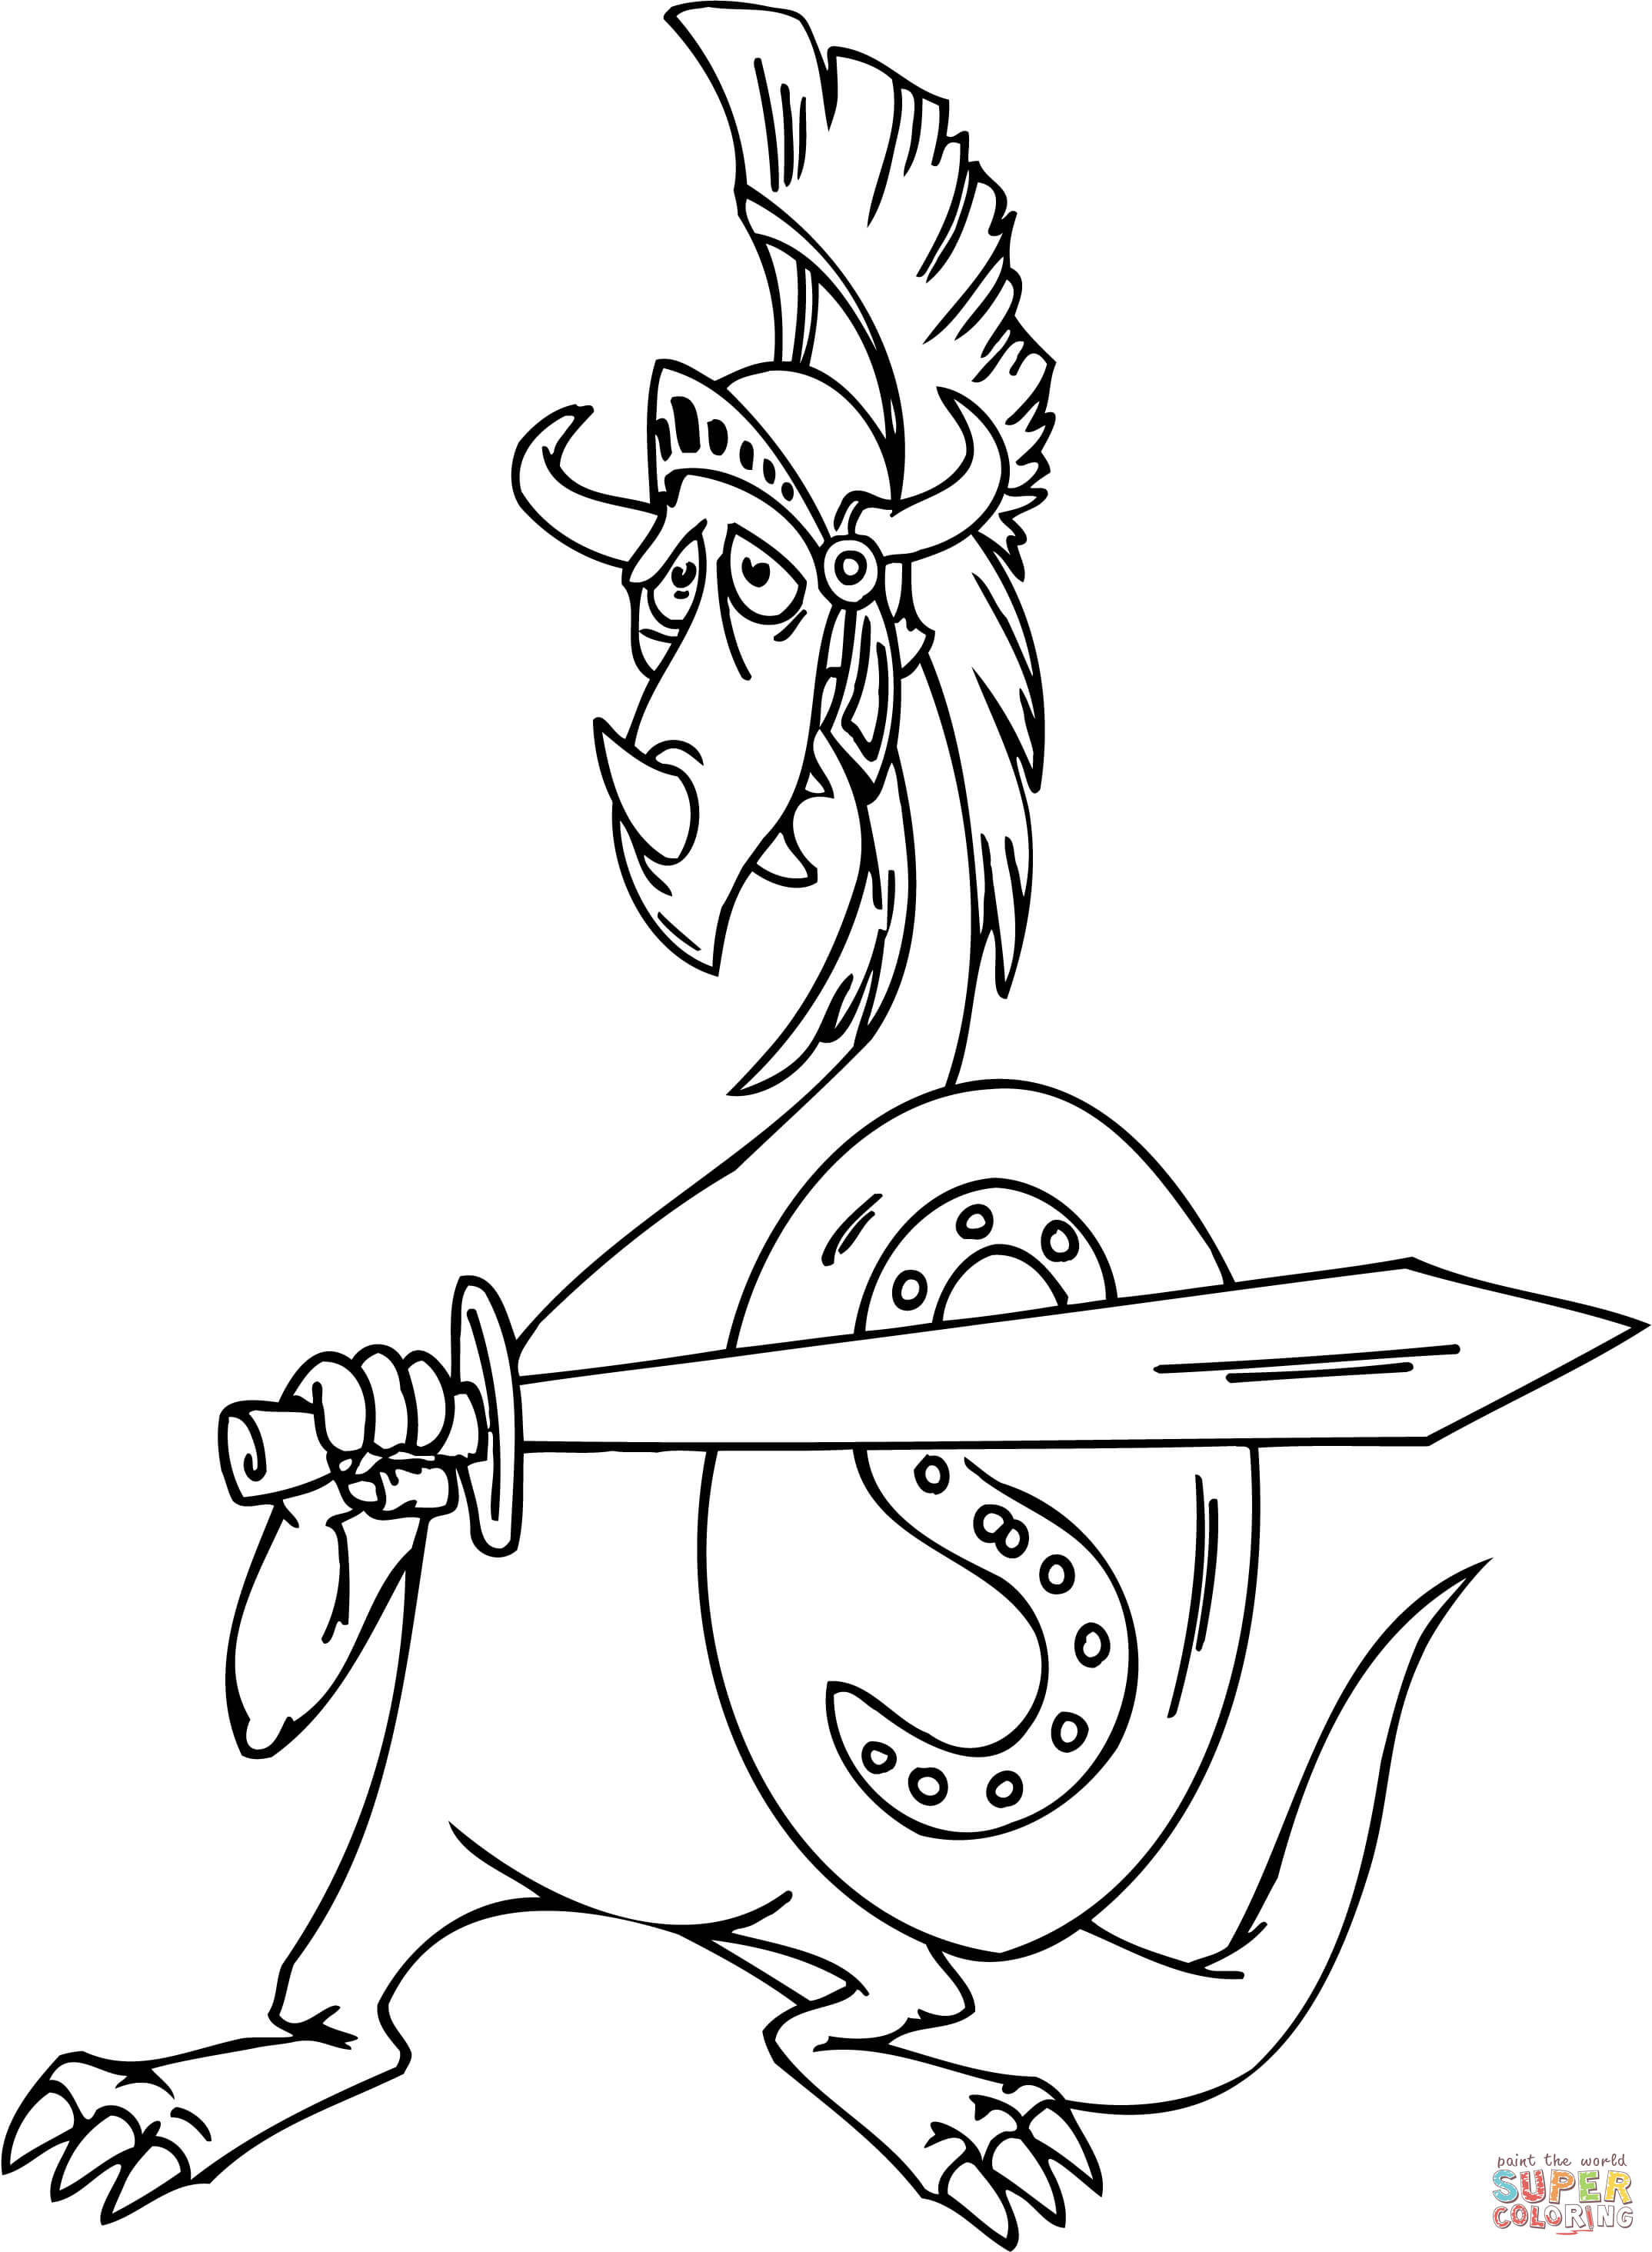 Dragon As A Gladiator Coloring Page